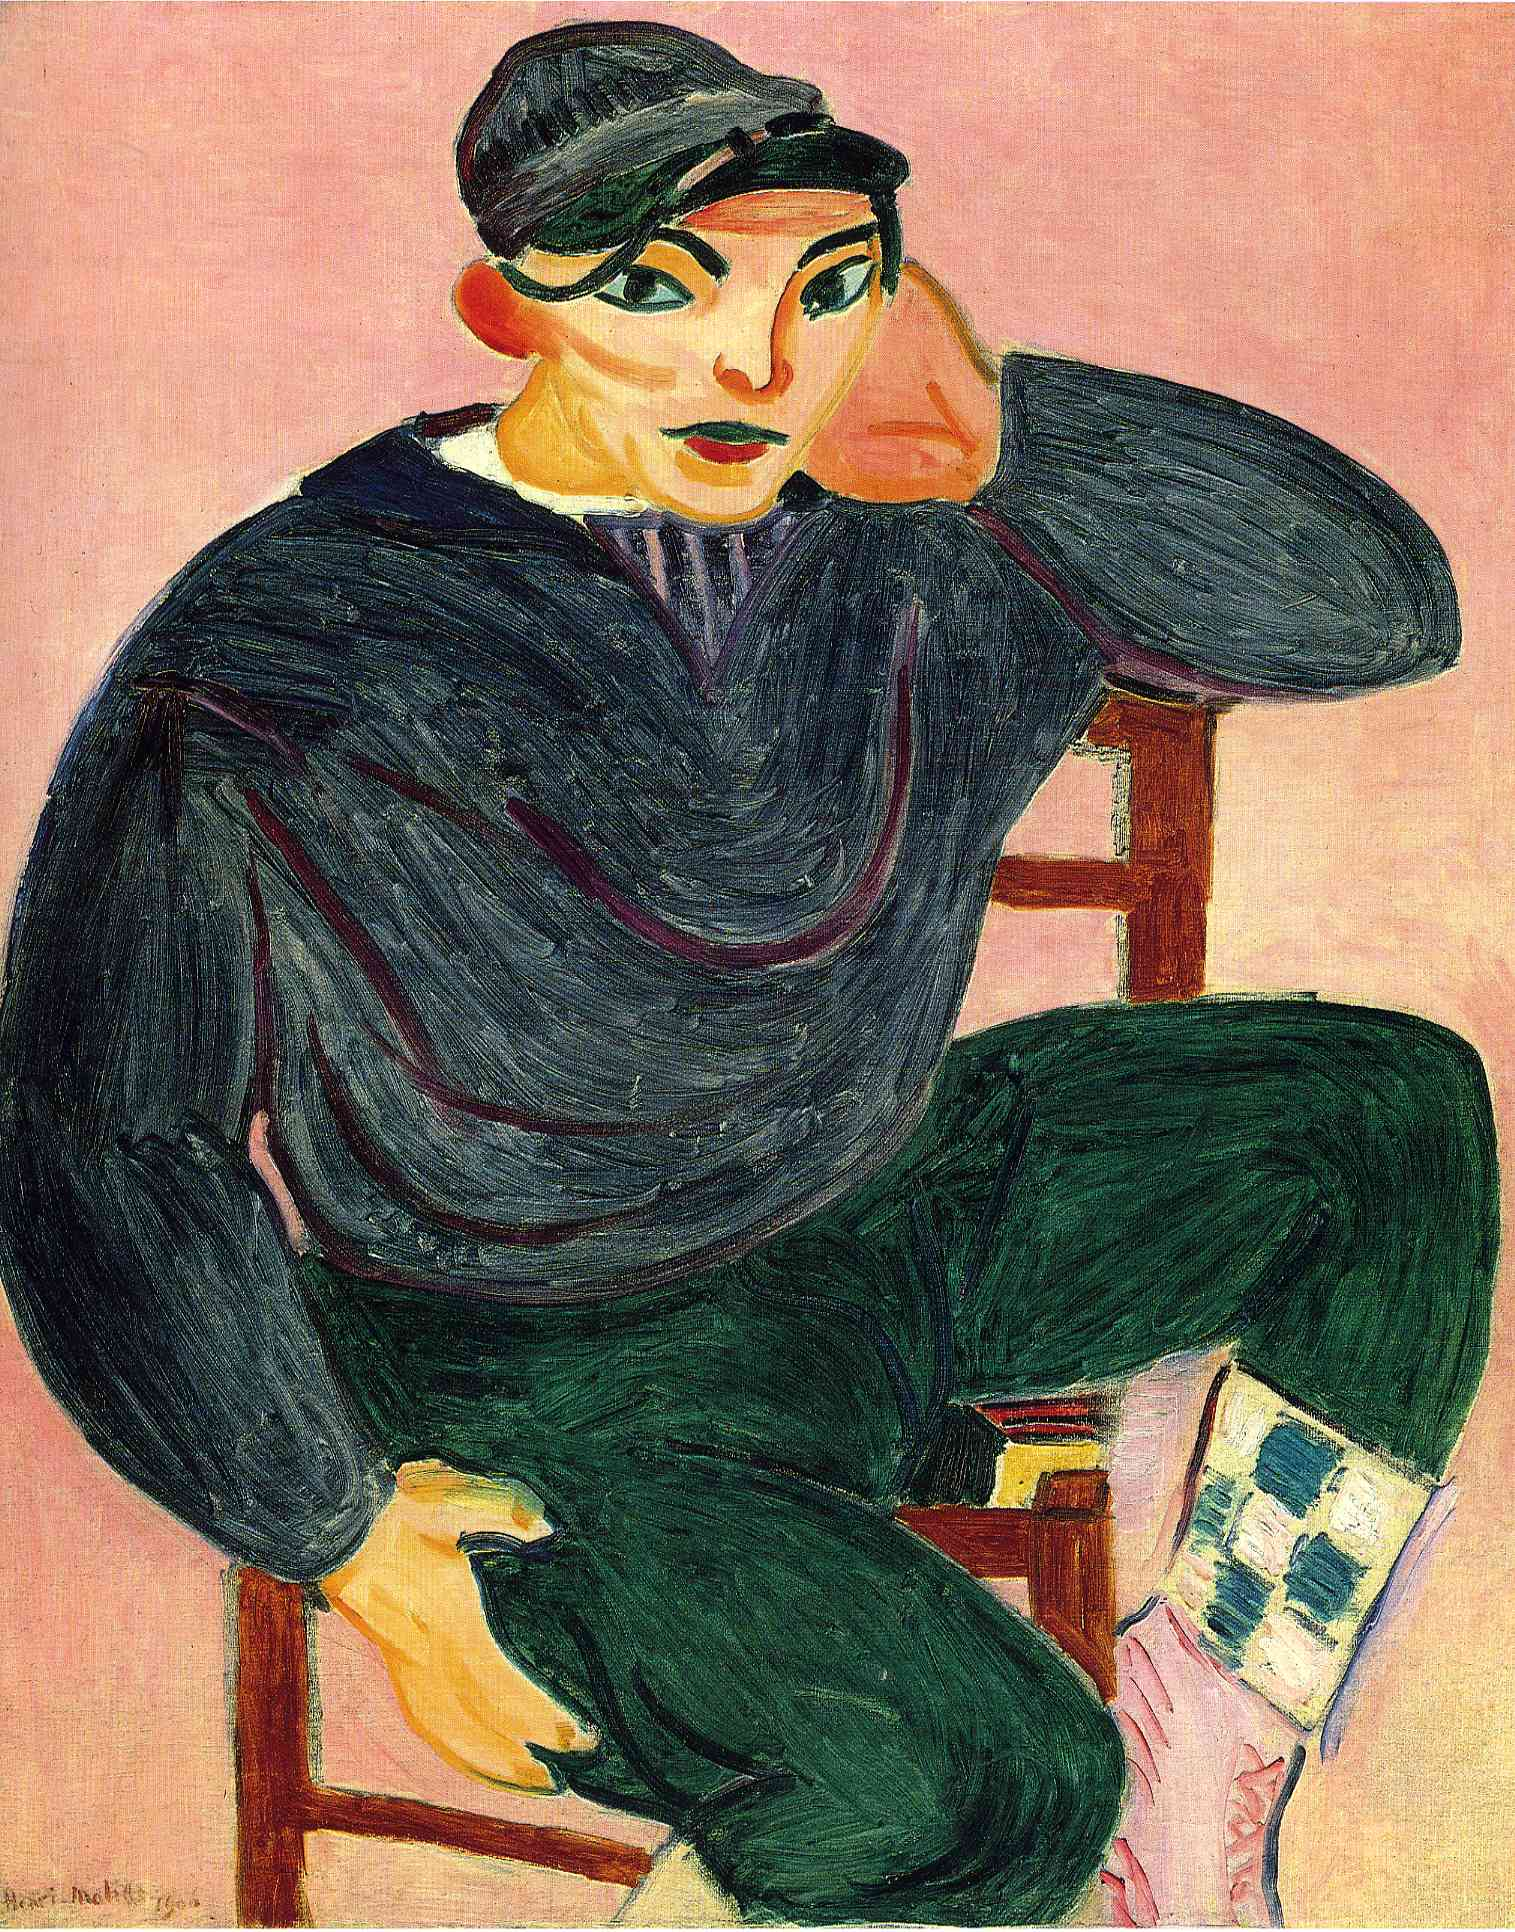 The Young Sailor, Matisse, 1906